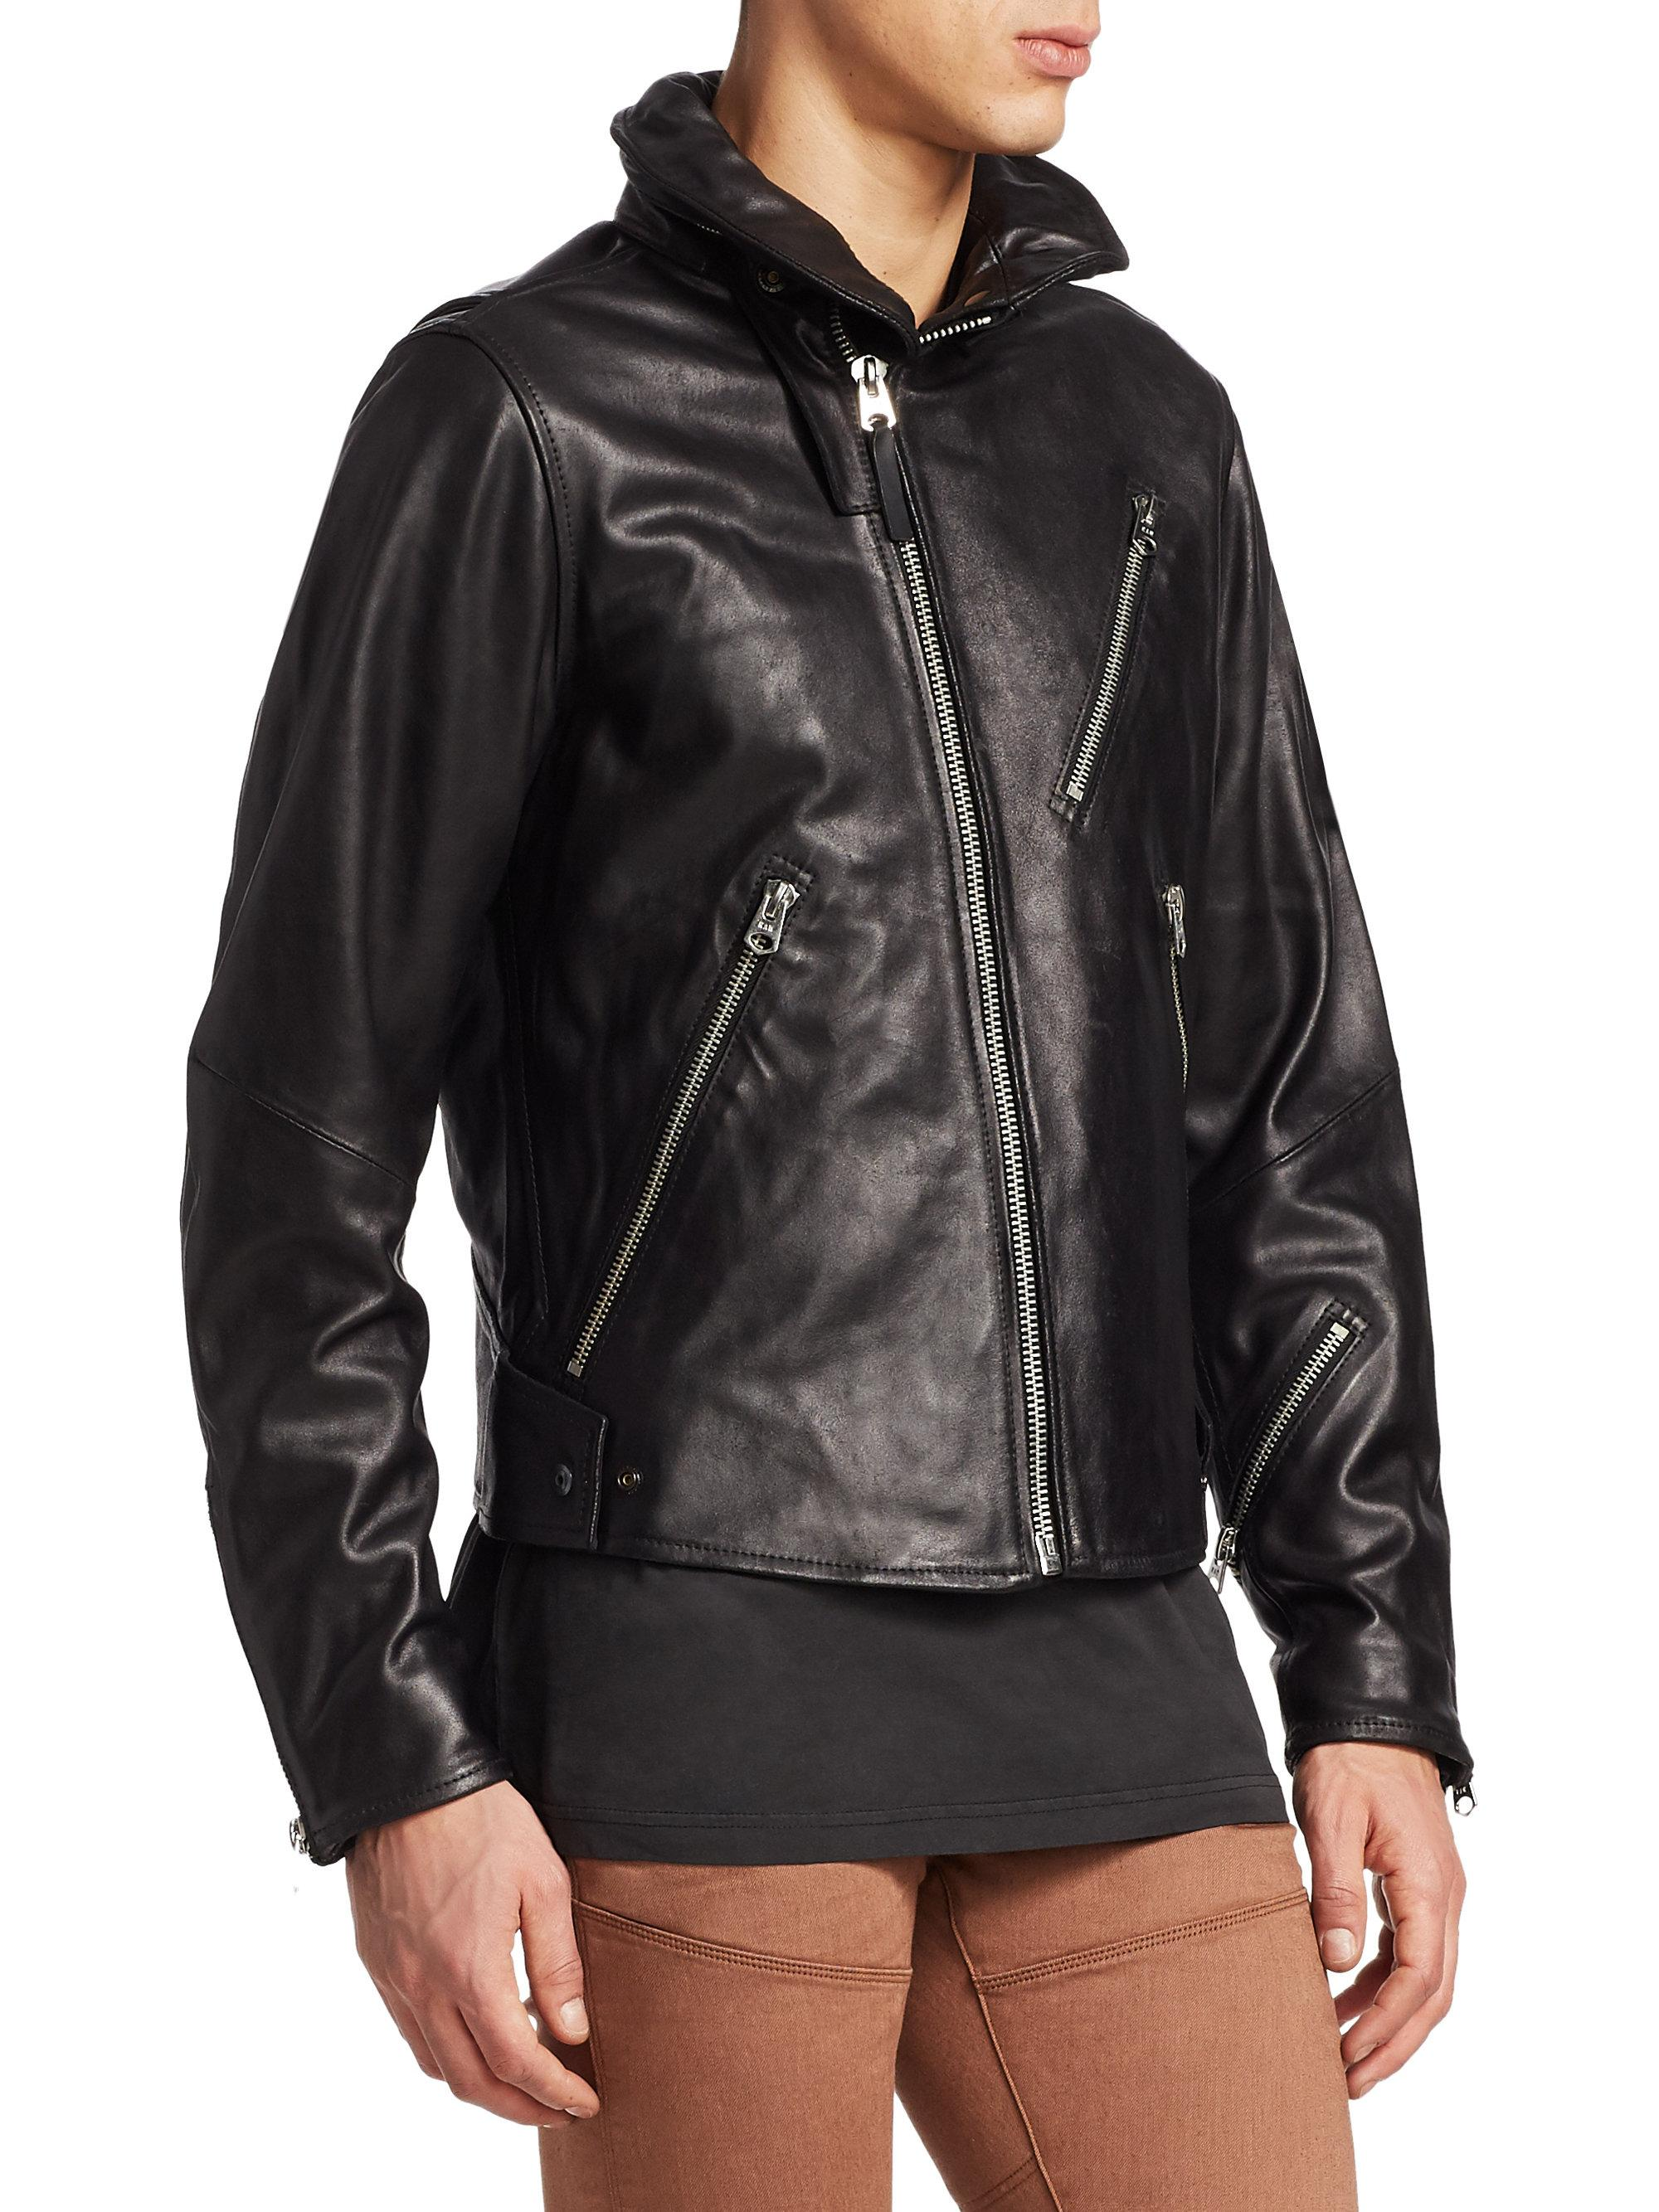 cheap sale best sale differently G-Star RAW Empral 3d Leather Biker Jacket in Black for Men - Lyst